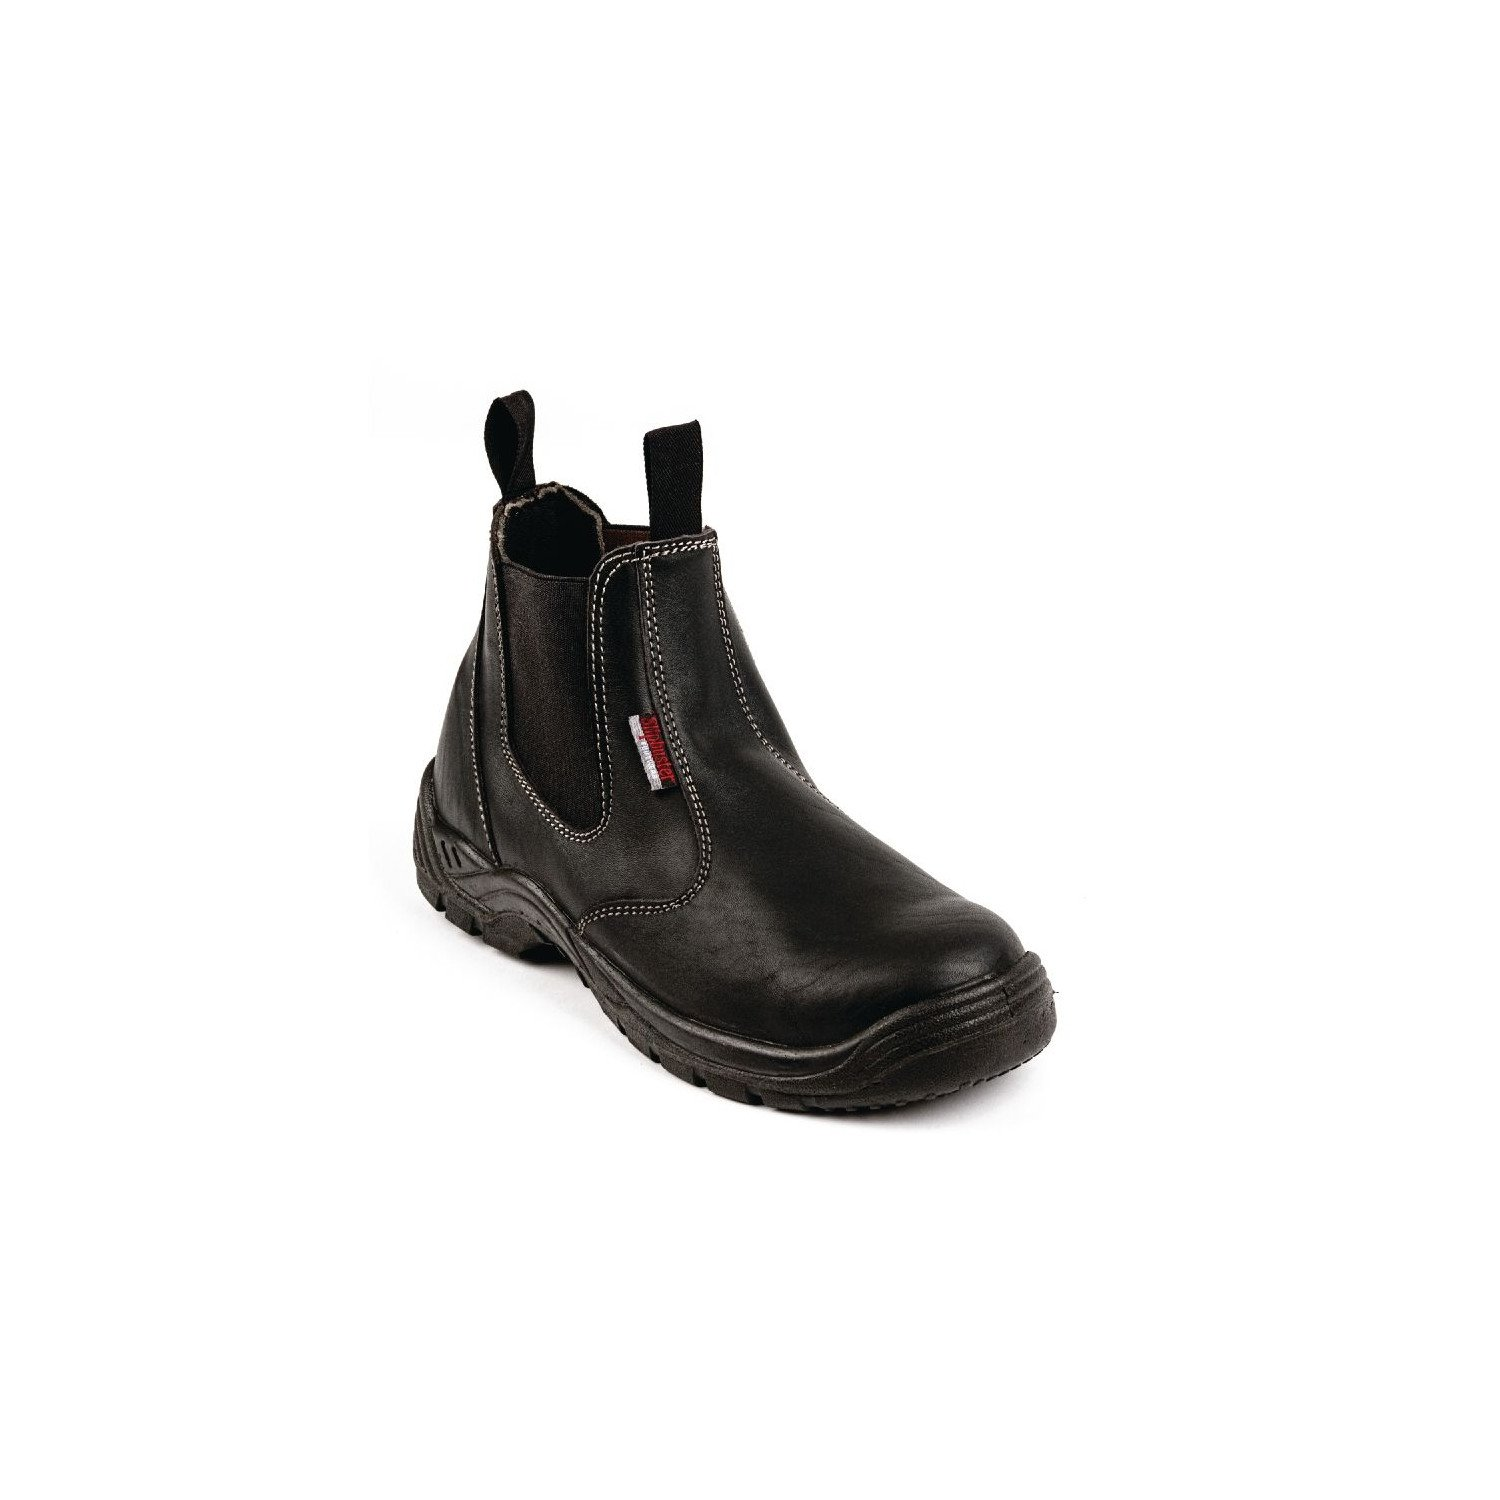 Bottines Slipbuster - 41 SLIPBUSTER FOOTWEAR Nisbets Vêtements